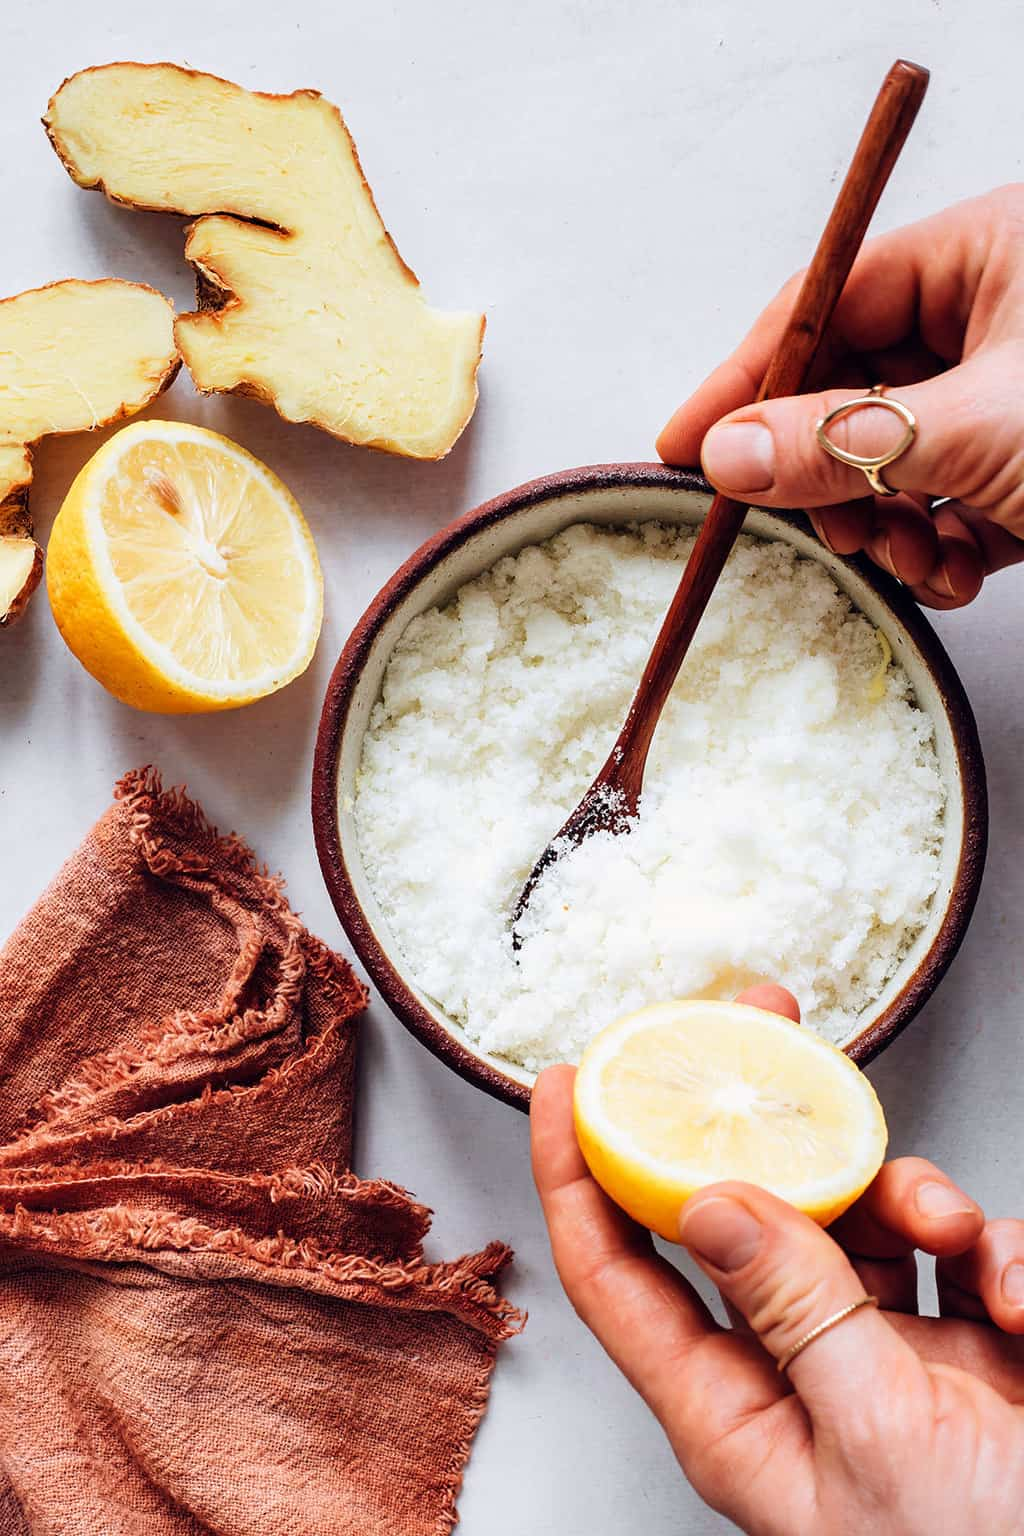 How to make a detox body scrub with ginger and lemon